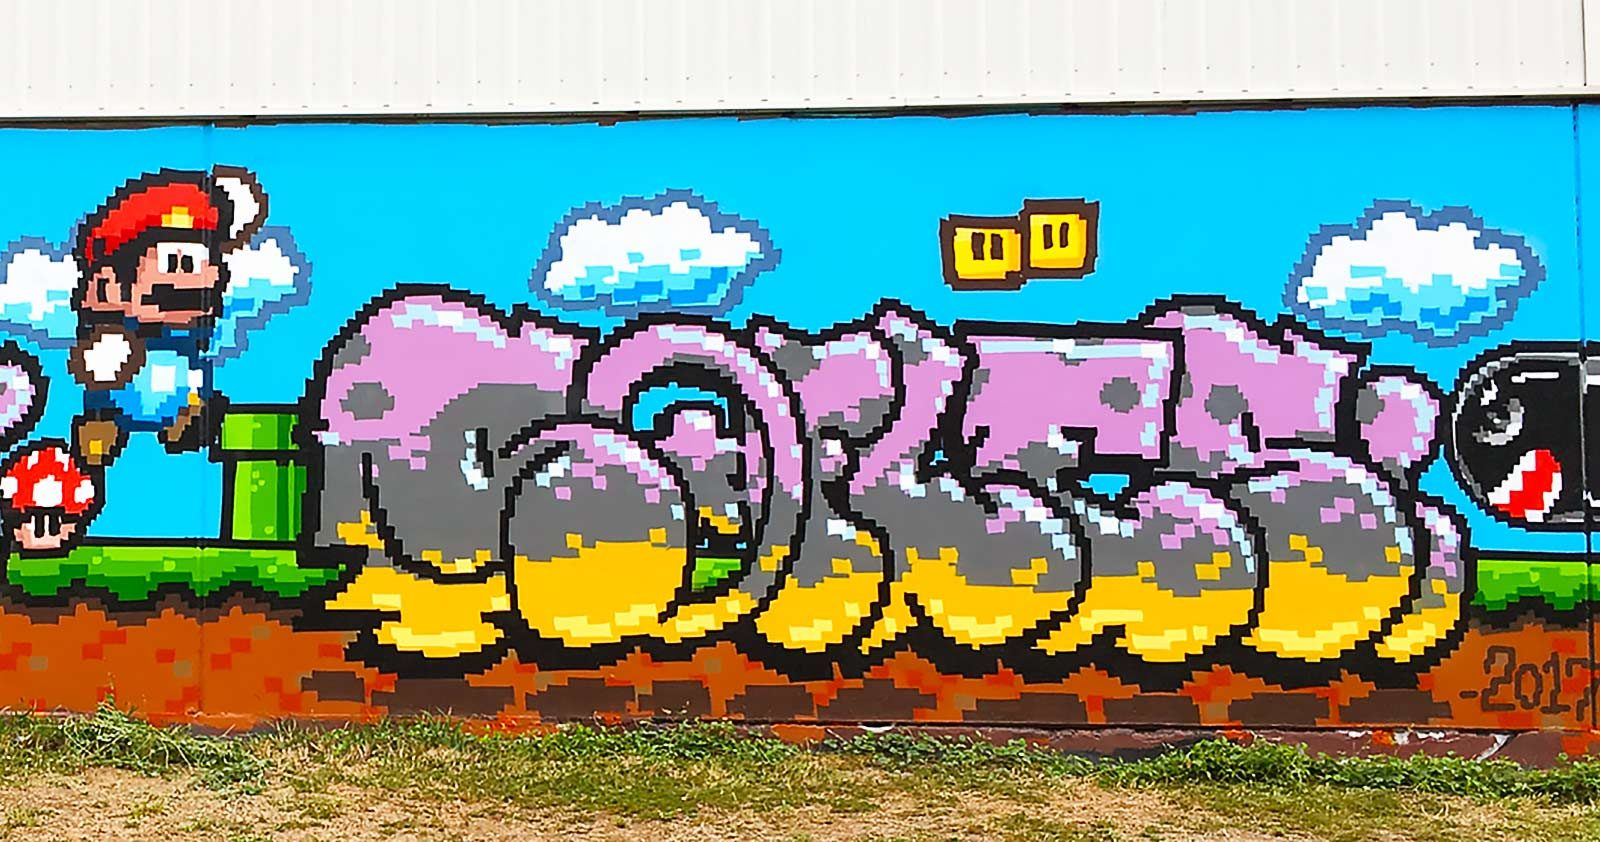 Retrogaming: Le Graffiti passe en mode 8-bits